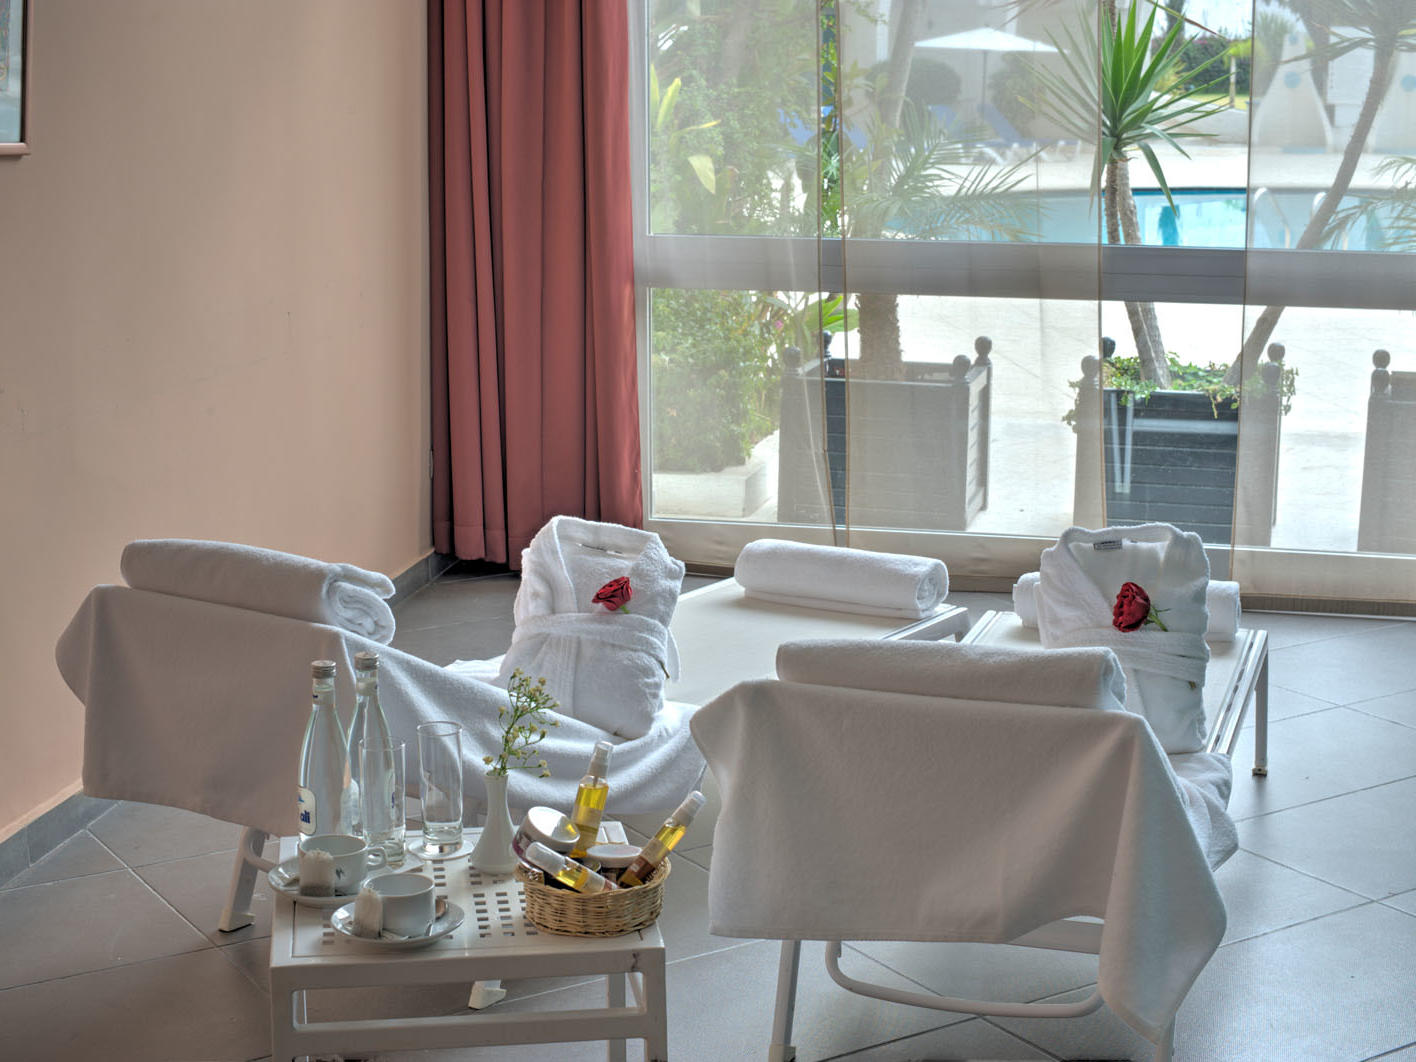 Spa at Kenzi Solazur Hotel in Tangier, Morocco